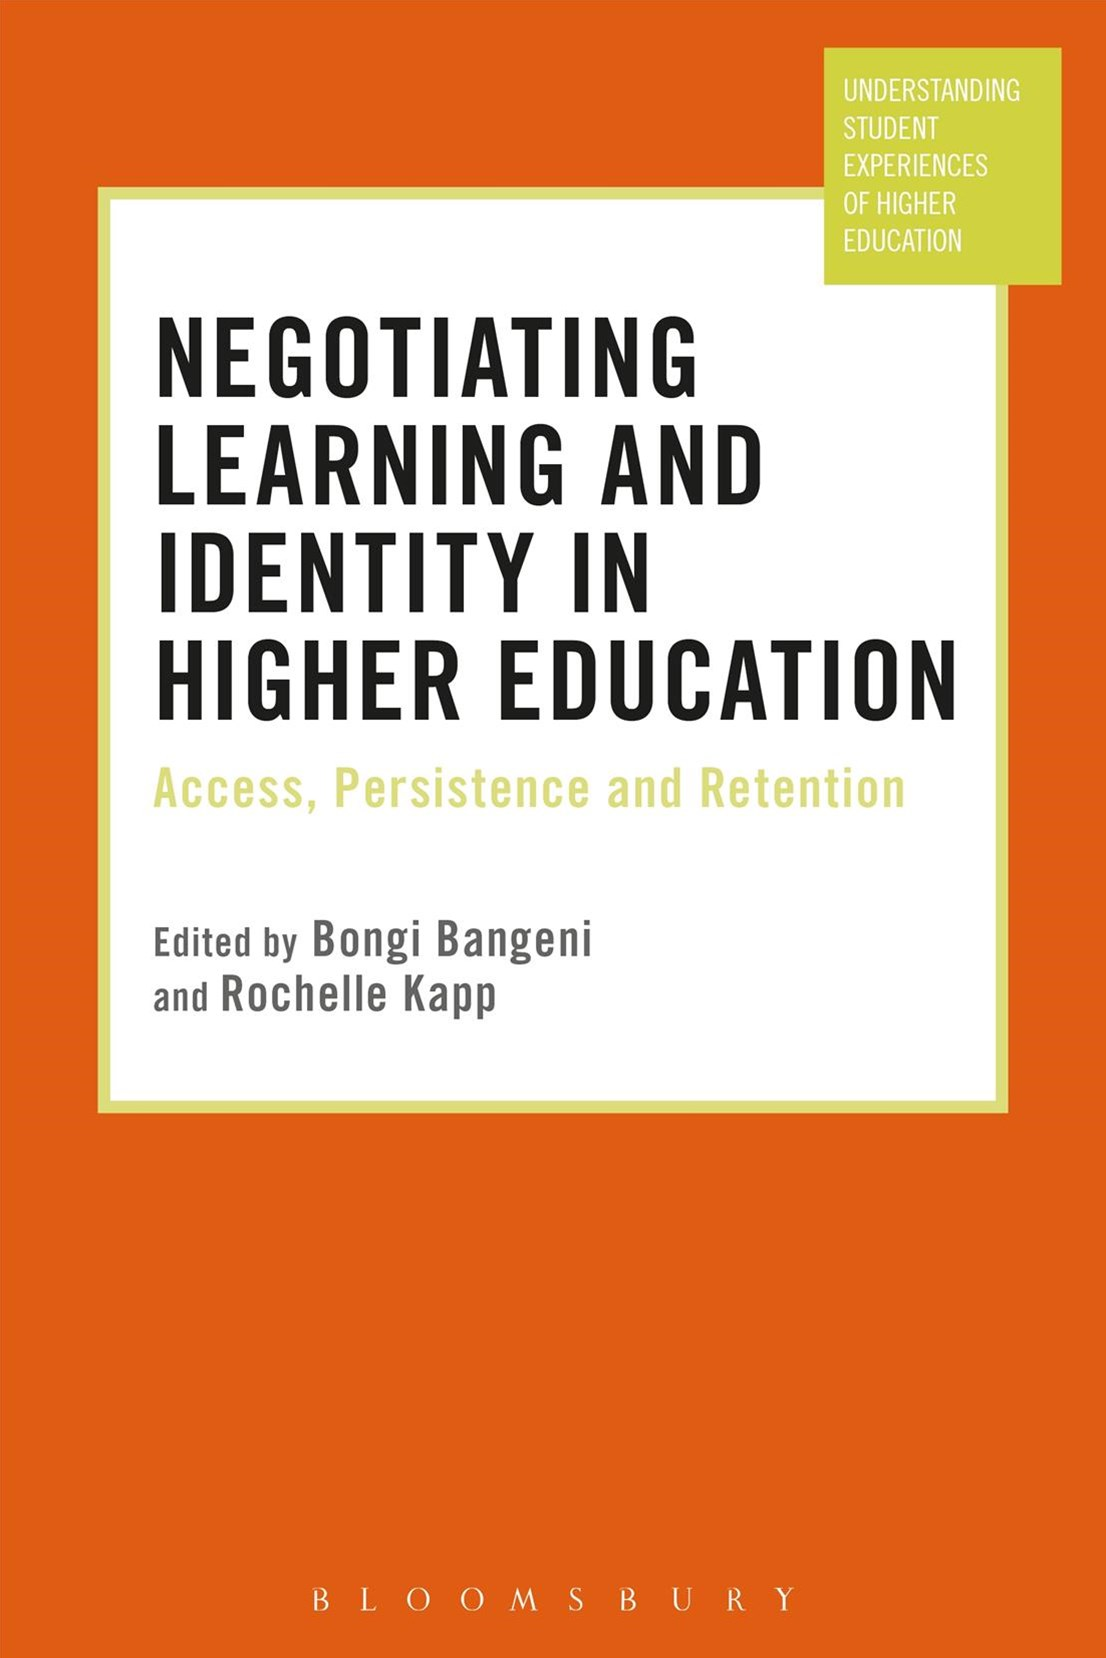 Negotiating Learning and Identity in Higher Education